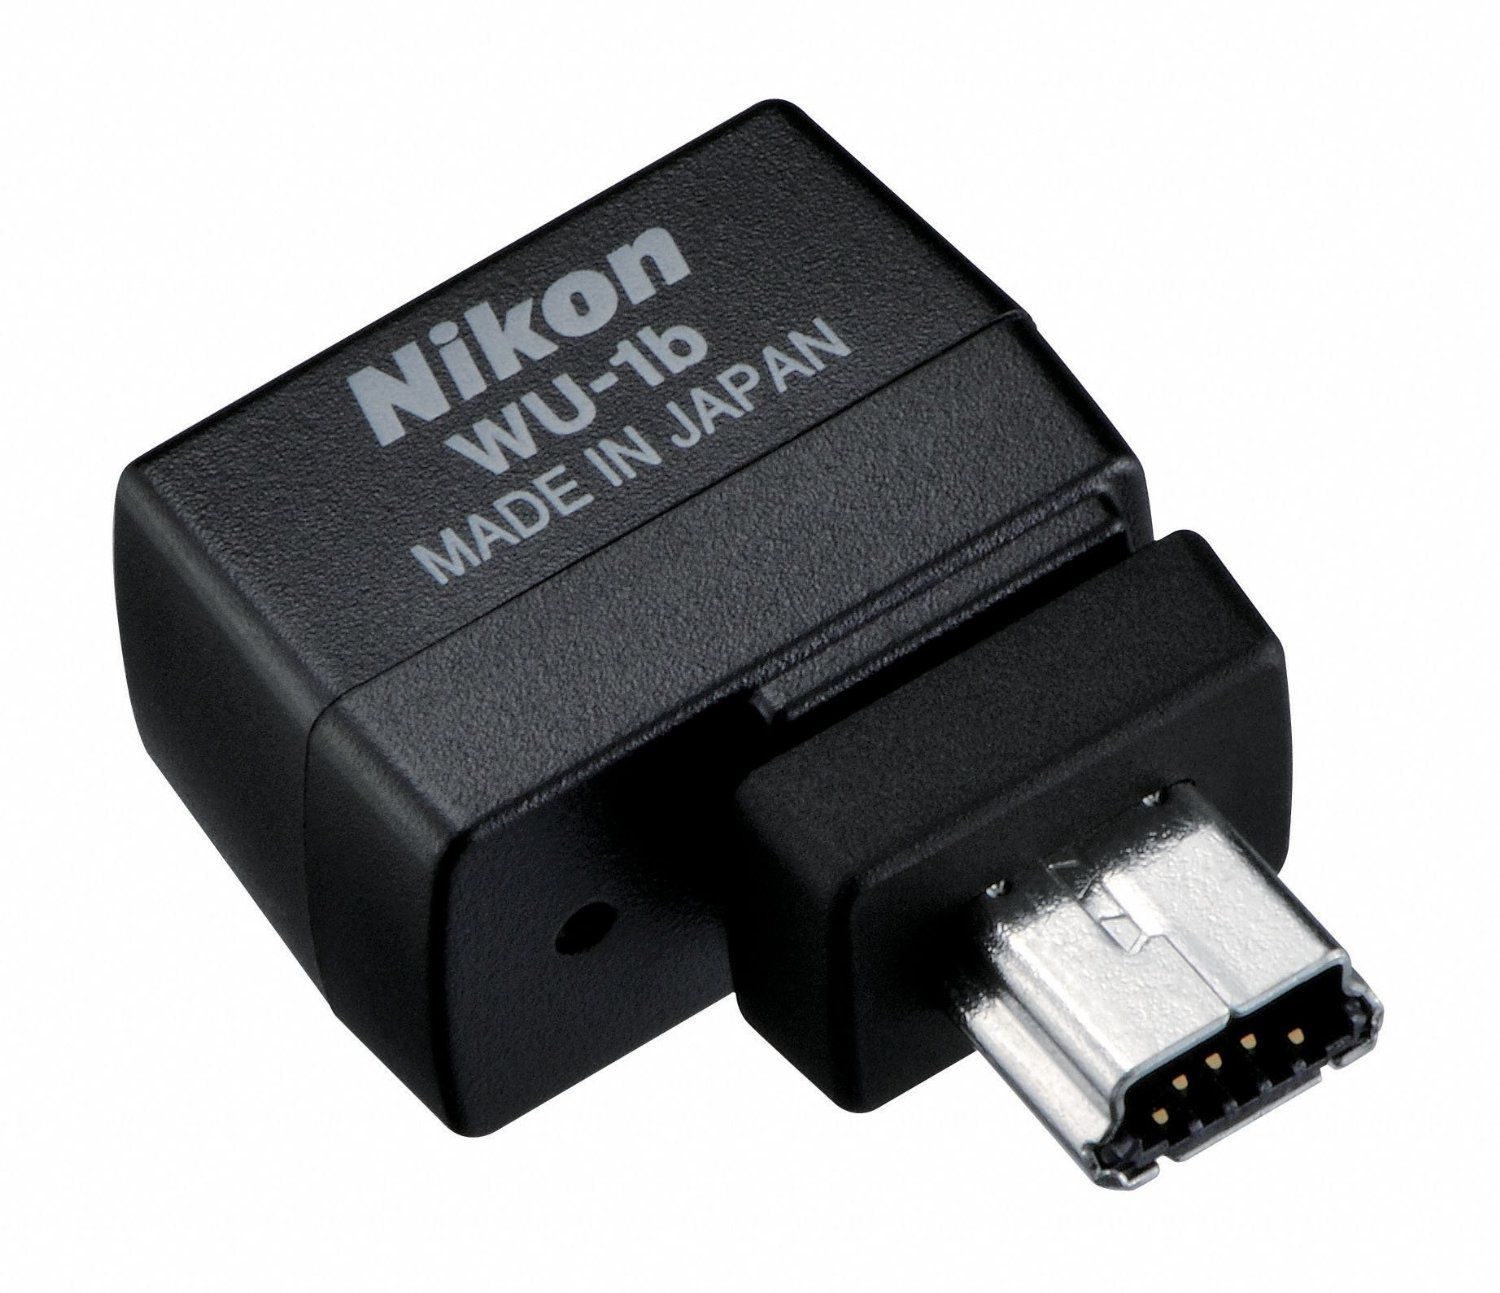 Adaptador WU-1b Wireless para Nikon D610